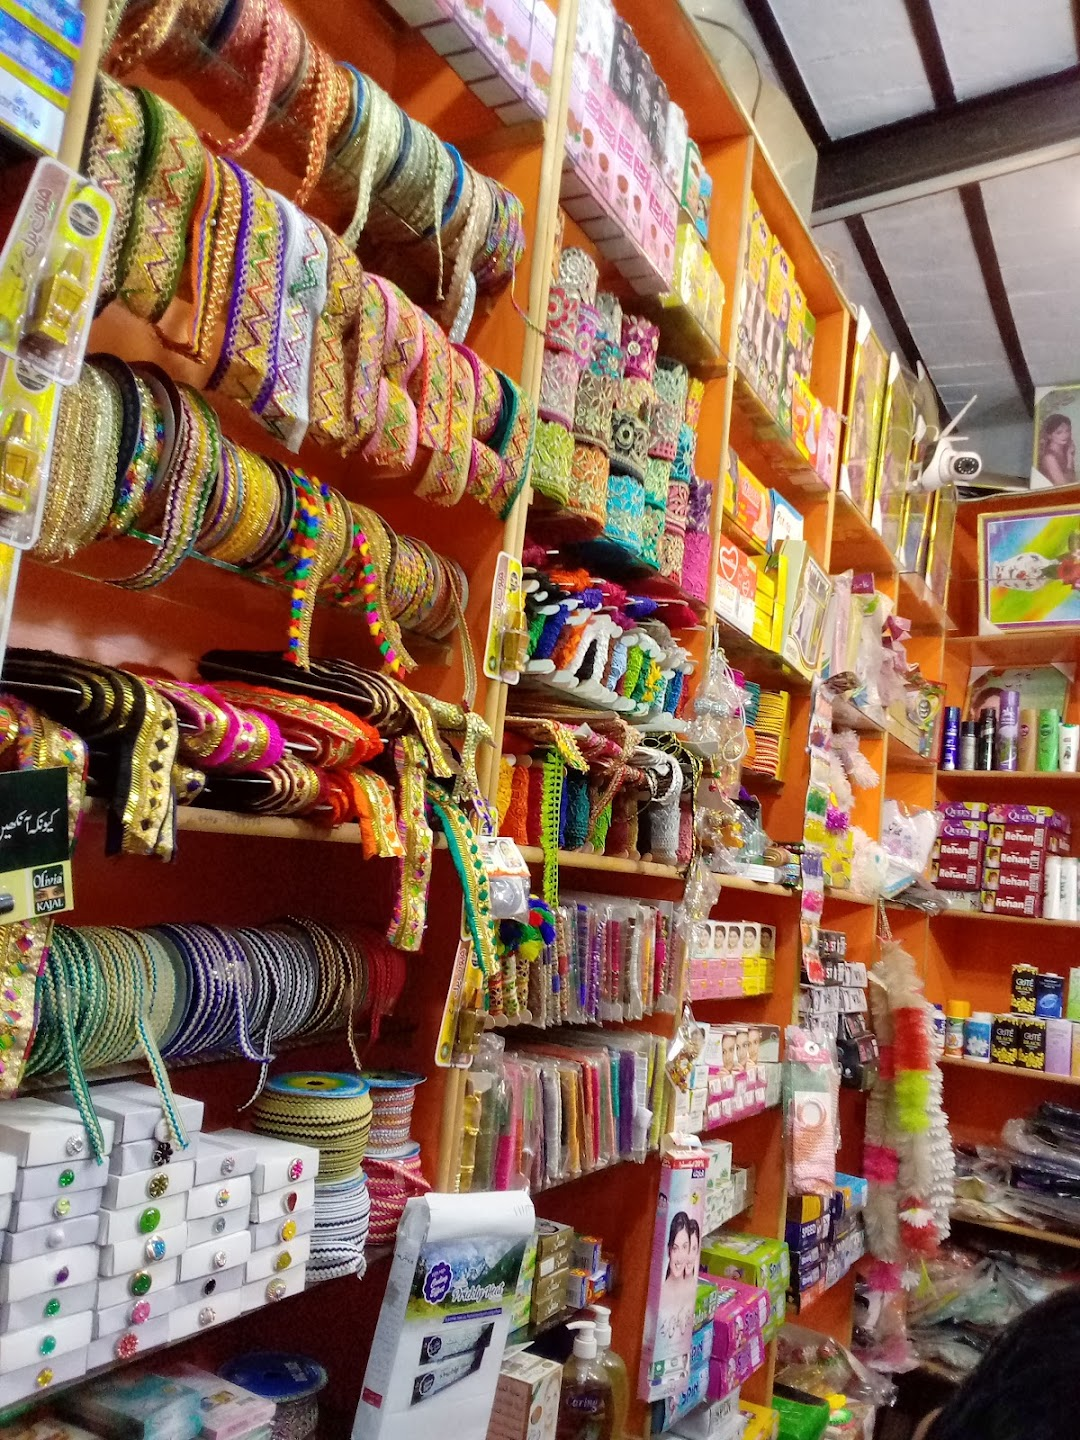 Ali Garments General Store And Lace Center in the city Sahiwal